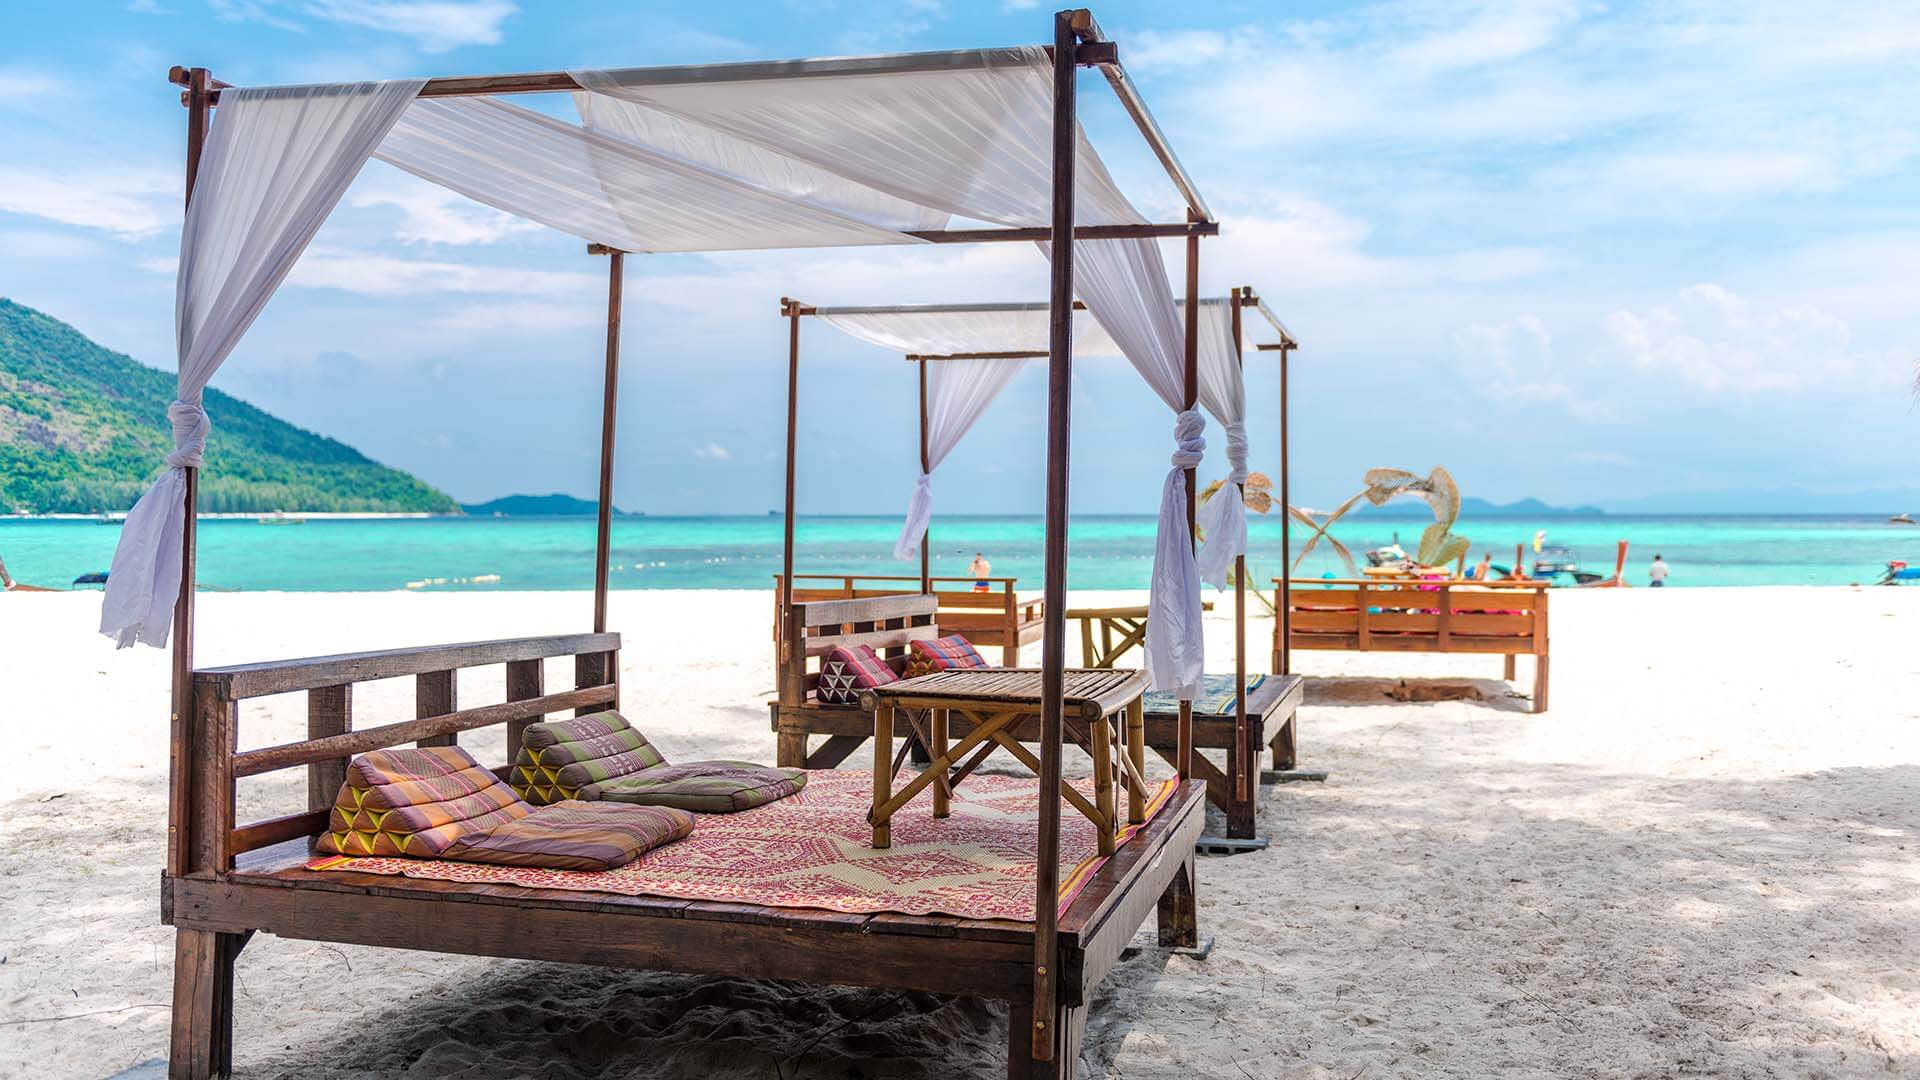 10 cheapest beach destinations in the world for Cheapest places to vacation in the world